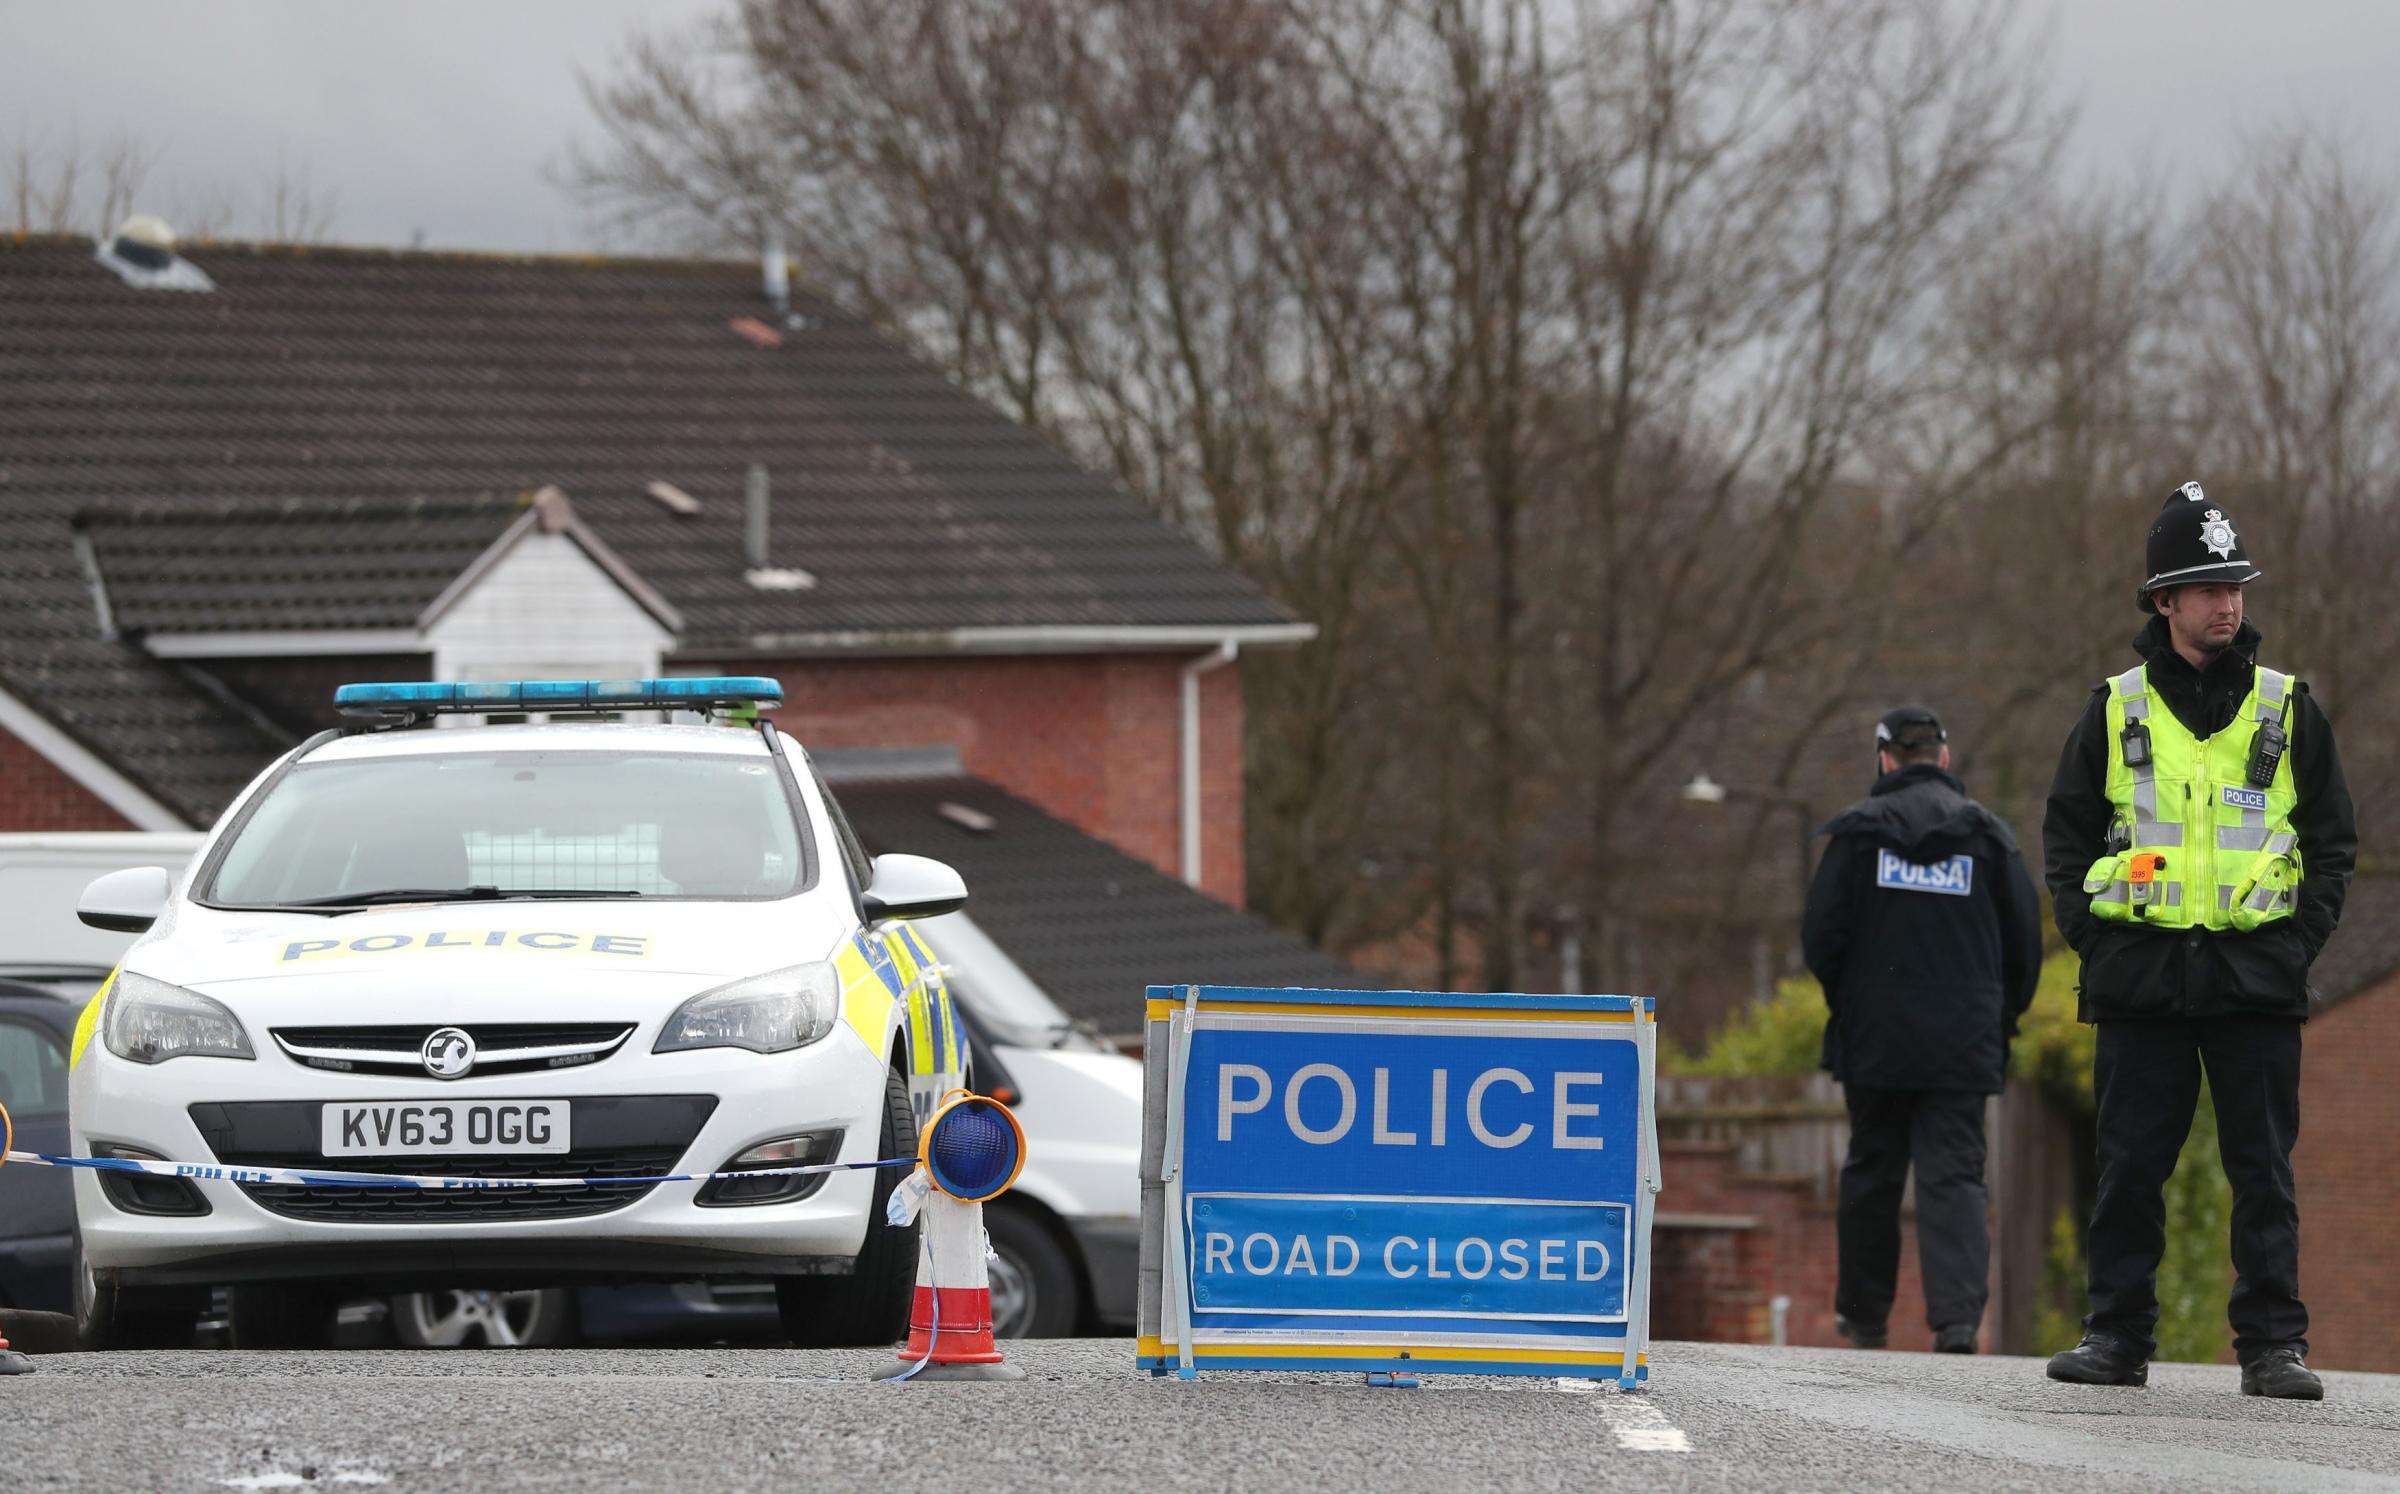 A police cordon remains in place on Christie Miller road in Salisbury, near to the home of Sergei Skripal